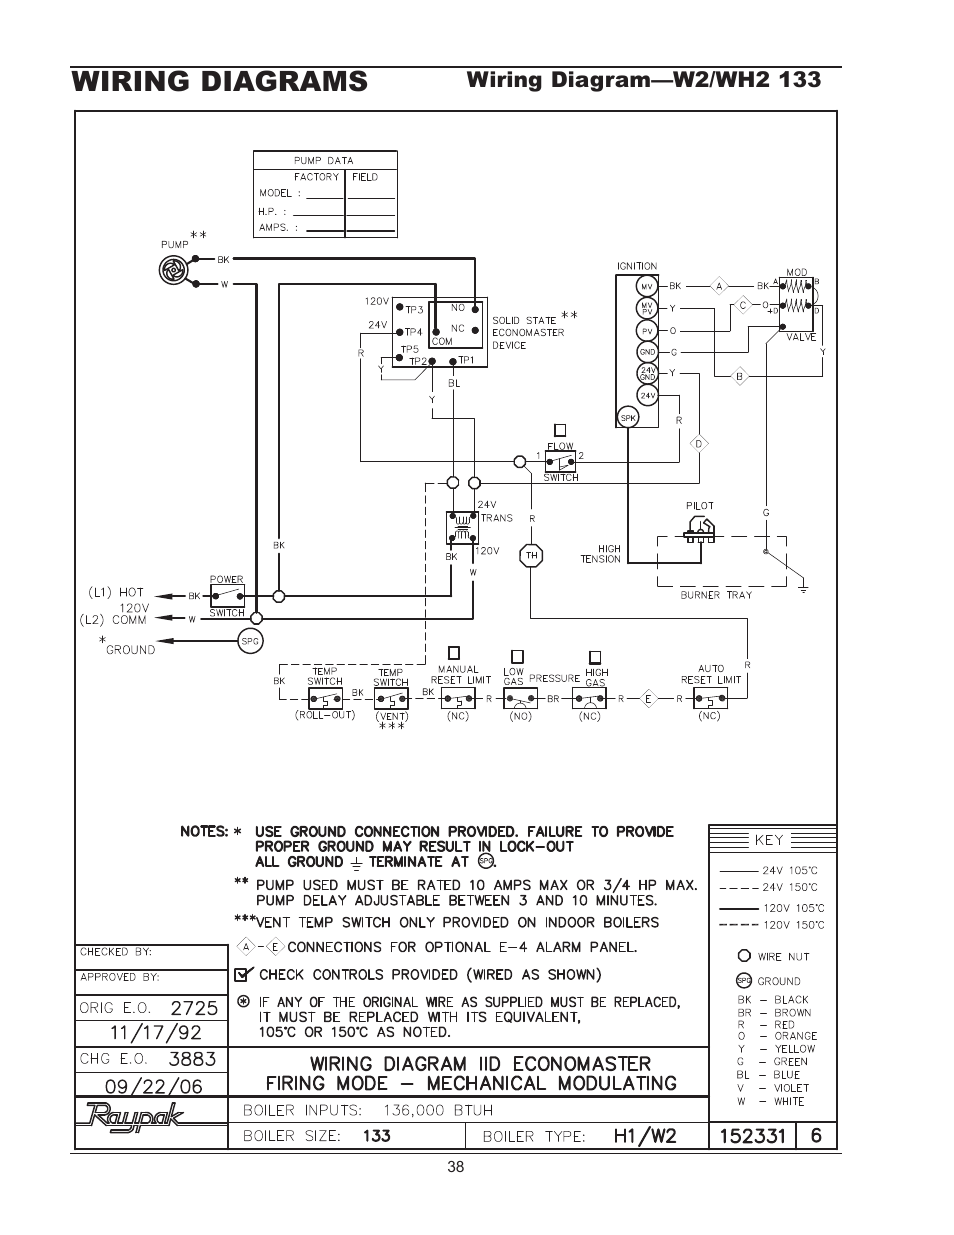 Raypak Boiler Wiring Diagram Library Diagrams For Boilers Diagramwh1 0181 0261 1334001 User Manual